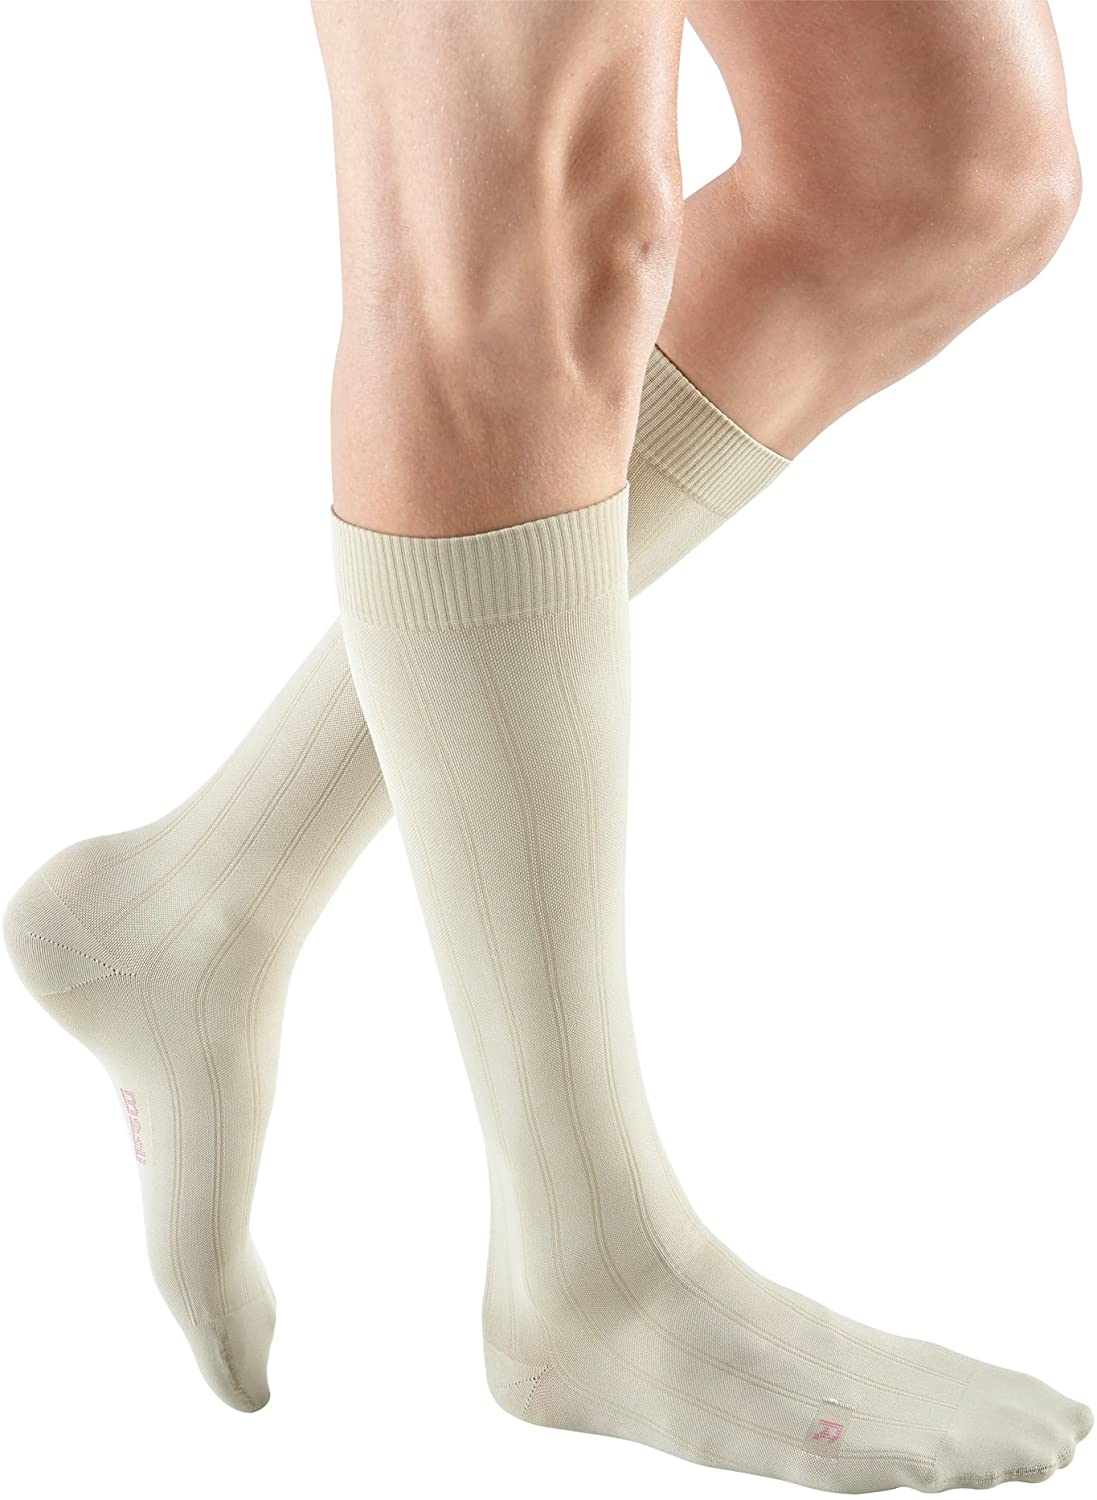 mediven for Men Classic, 20-30 mmHg, Calf High Compression Stockings, Closed Toe